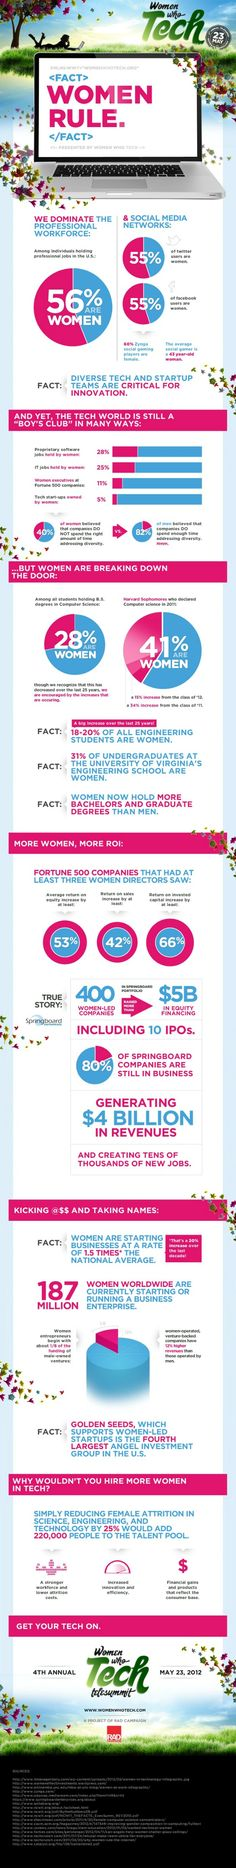 Infographic. Women leaders, social media and entrepreneurship   Click through Article: Can Tech Companies Continue To Innovate With No Women At The Table Fast Company #infographic